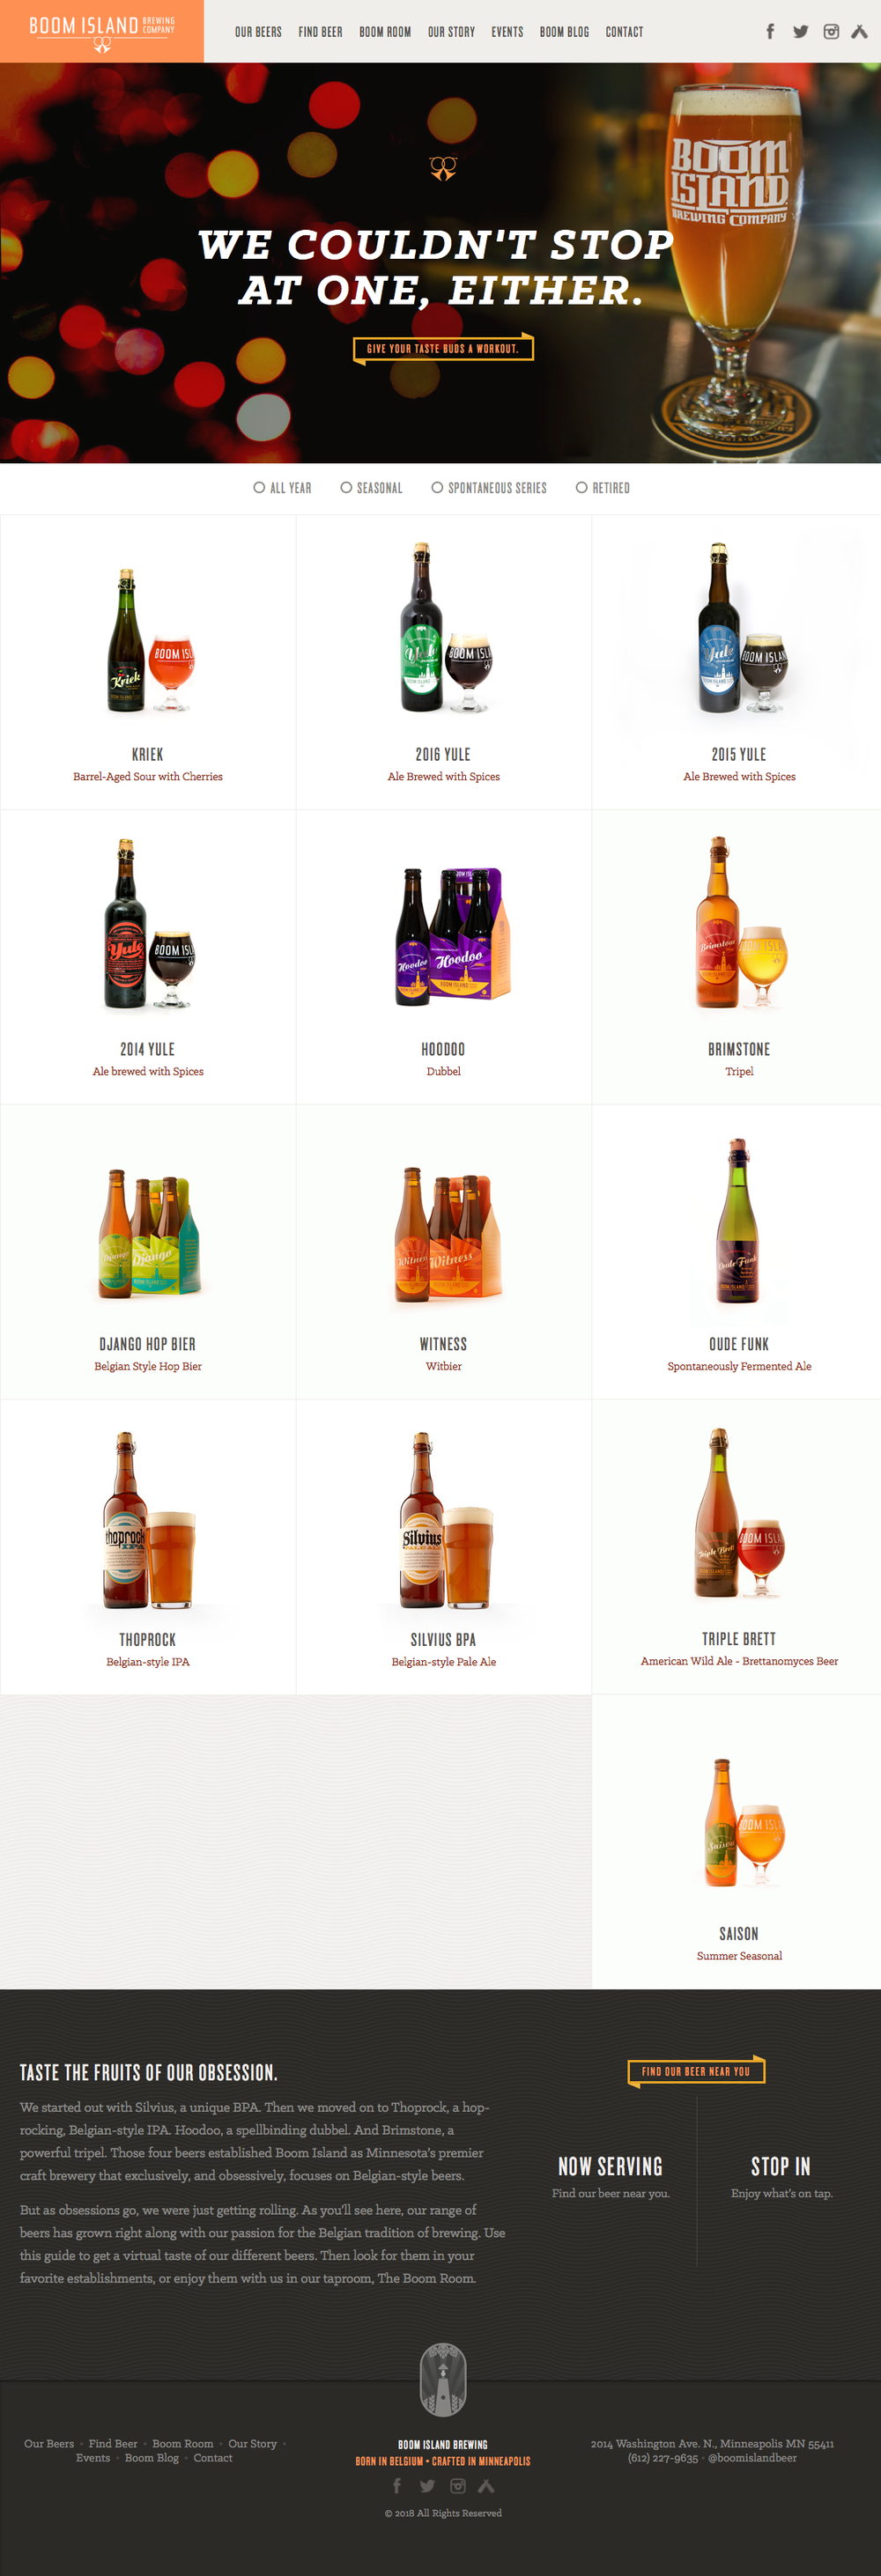 Our+Beers.png